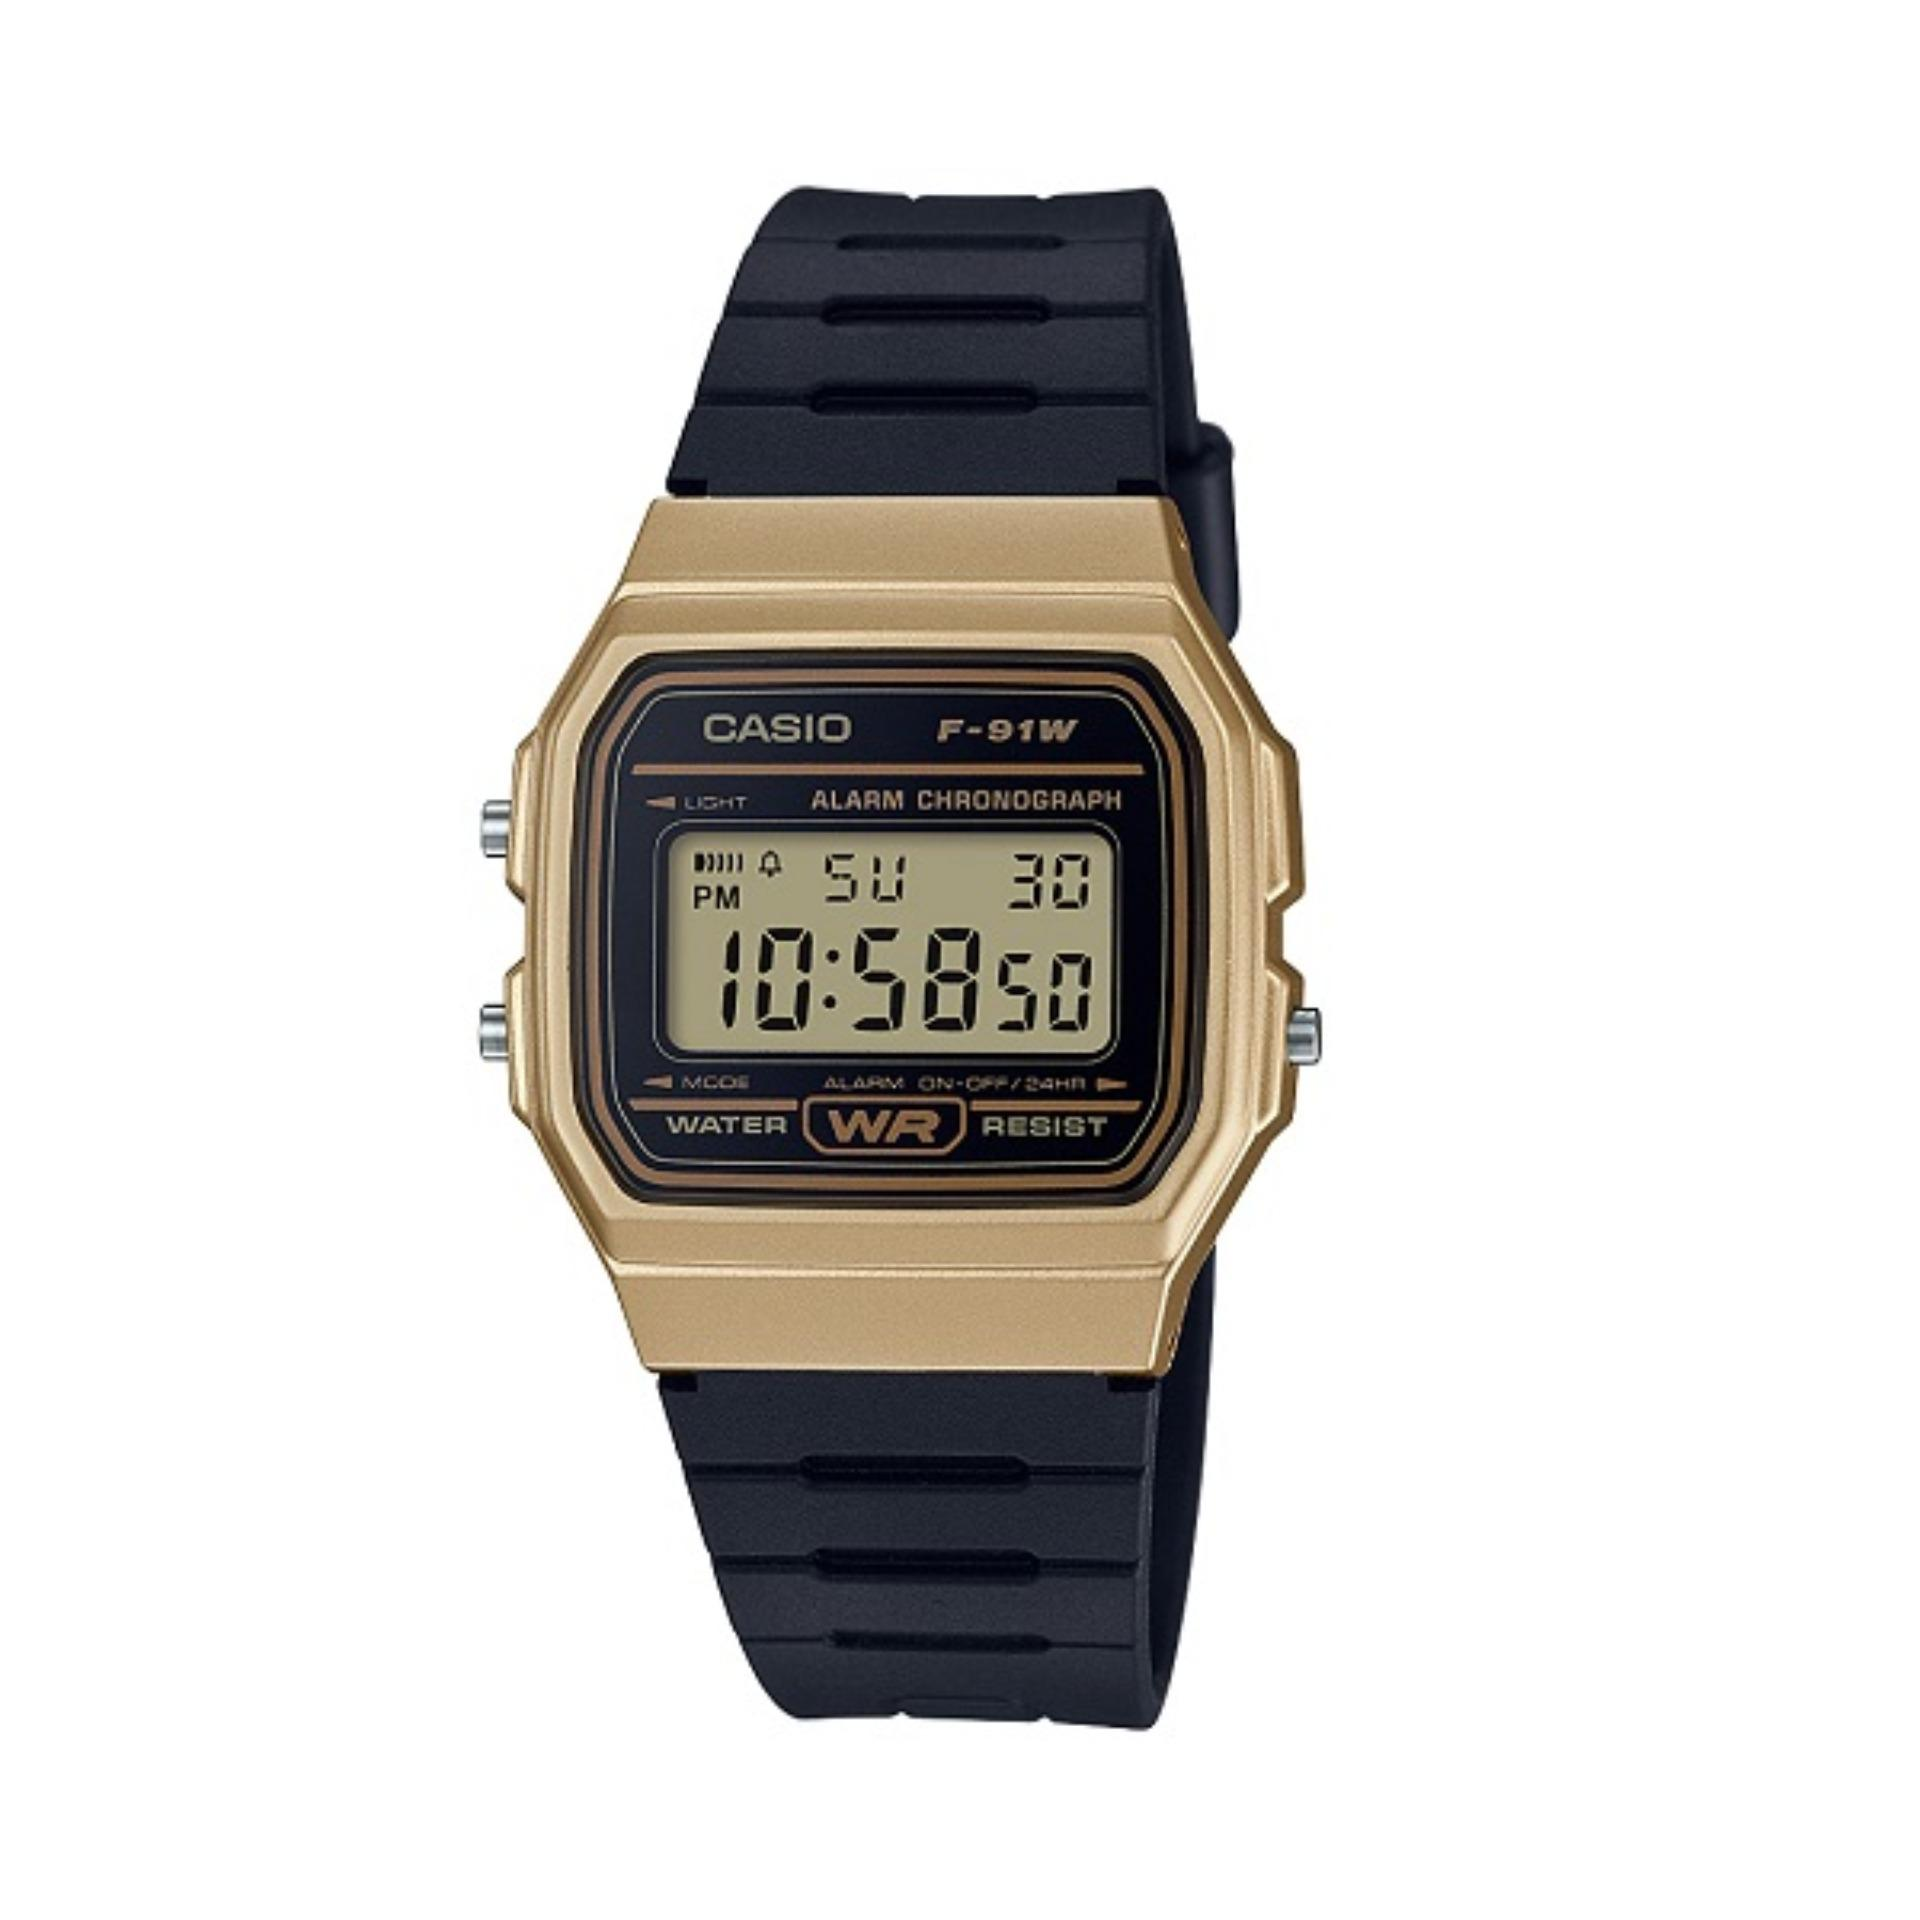 e37e5d5e0db Casio Philippines  Casio price list - Casio Watches for Men   Women for  sale